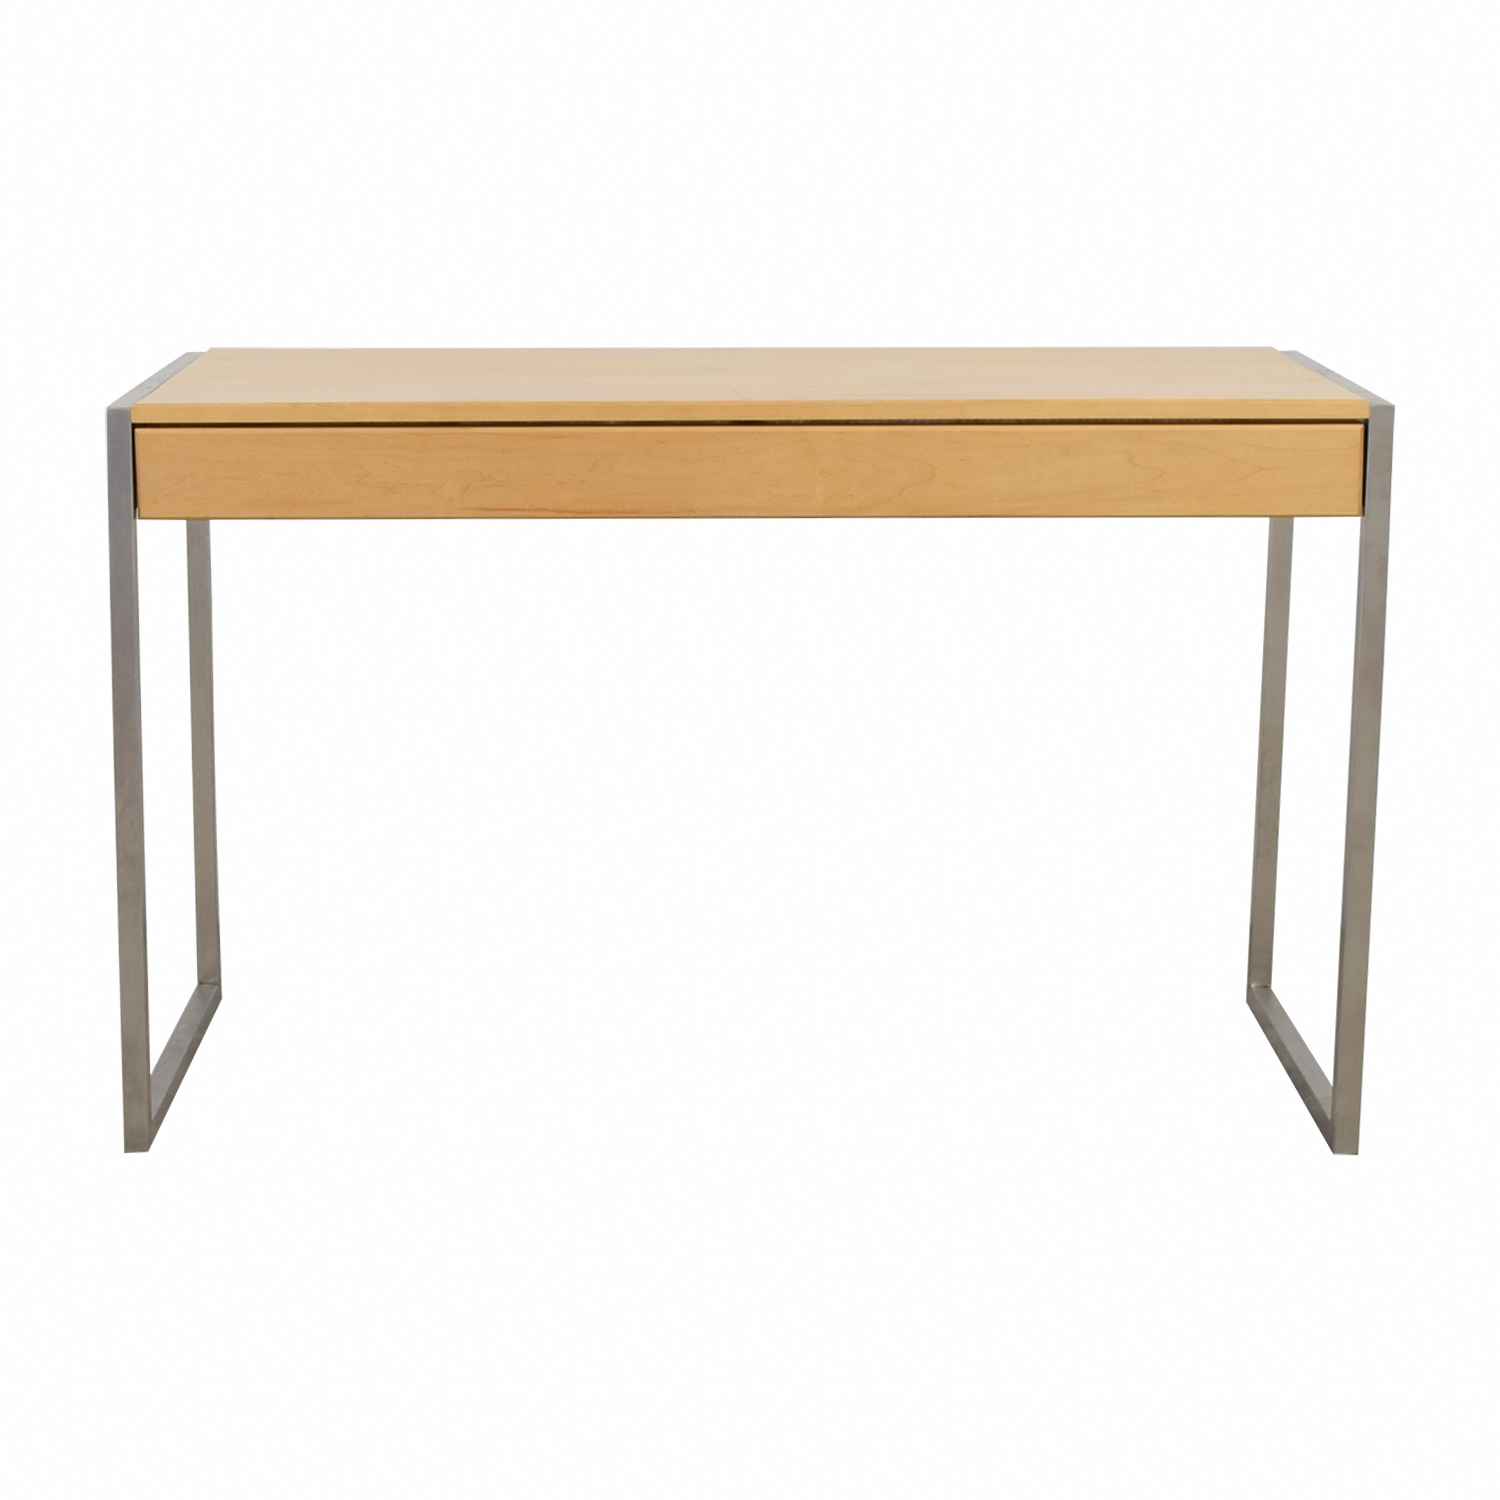 buy Room & Board Room & Board Desk with Pullout Tray online